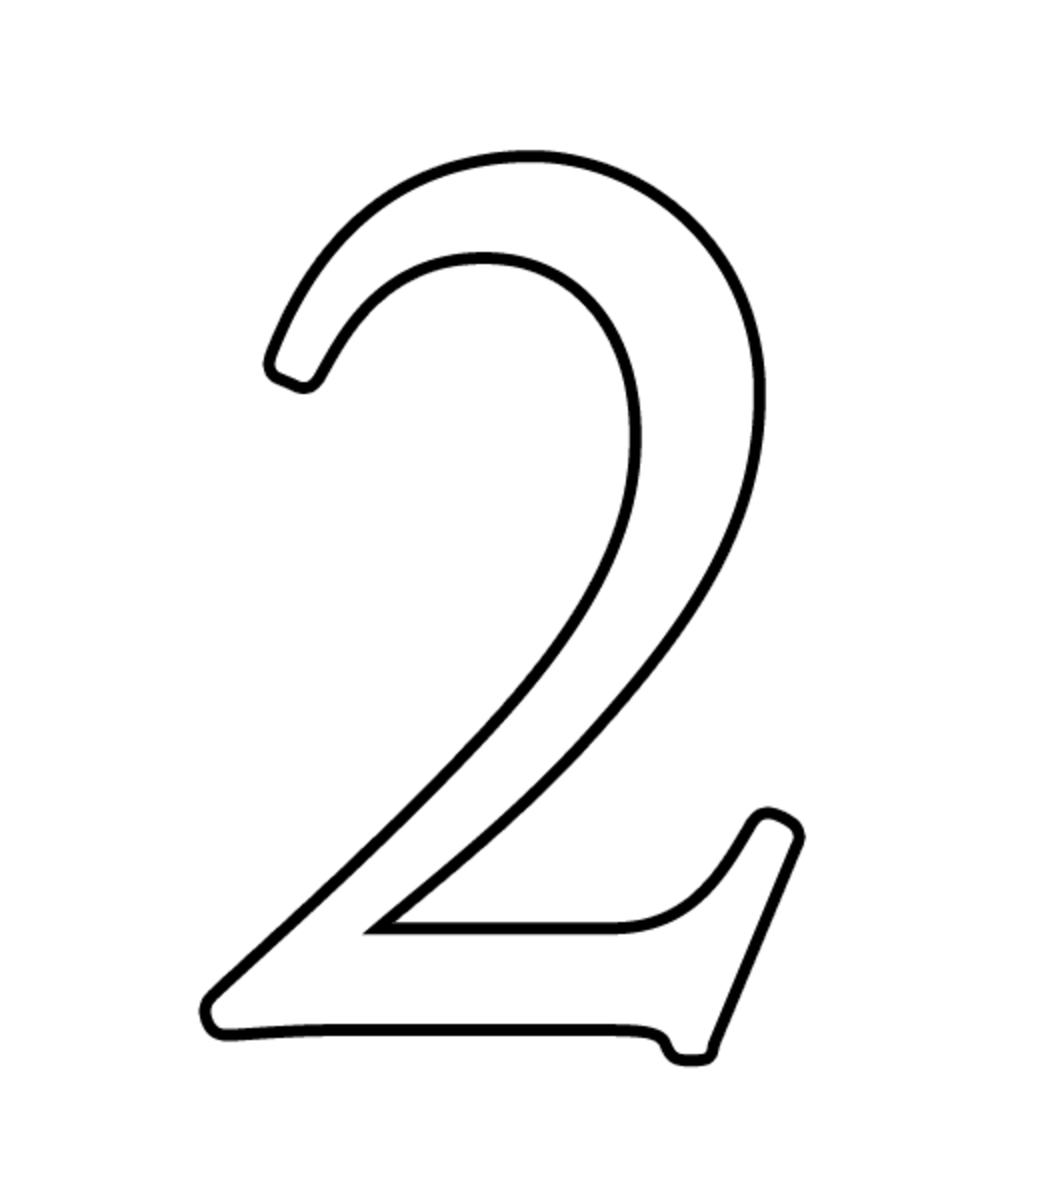 Number Zero Coloring Page Number Two Coloring Page